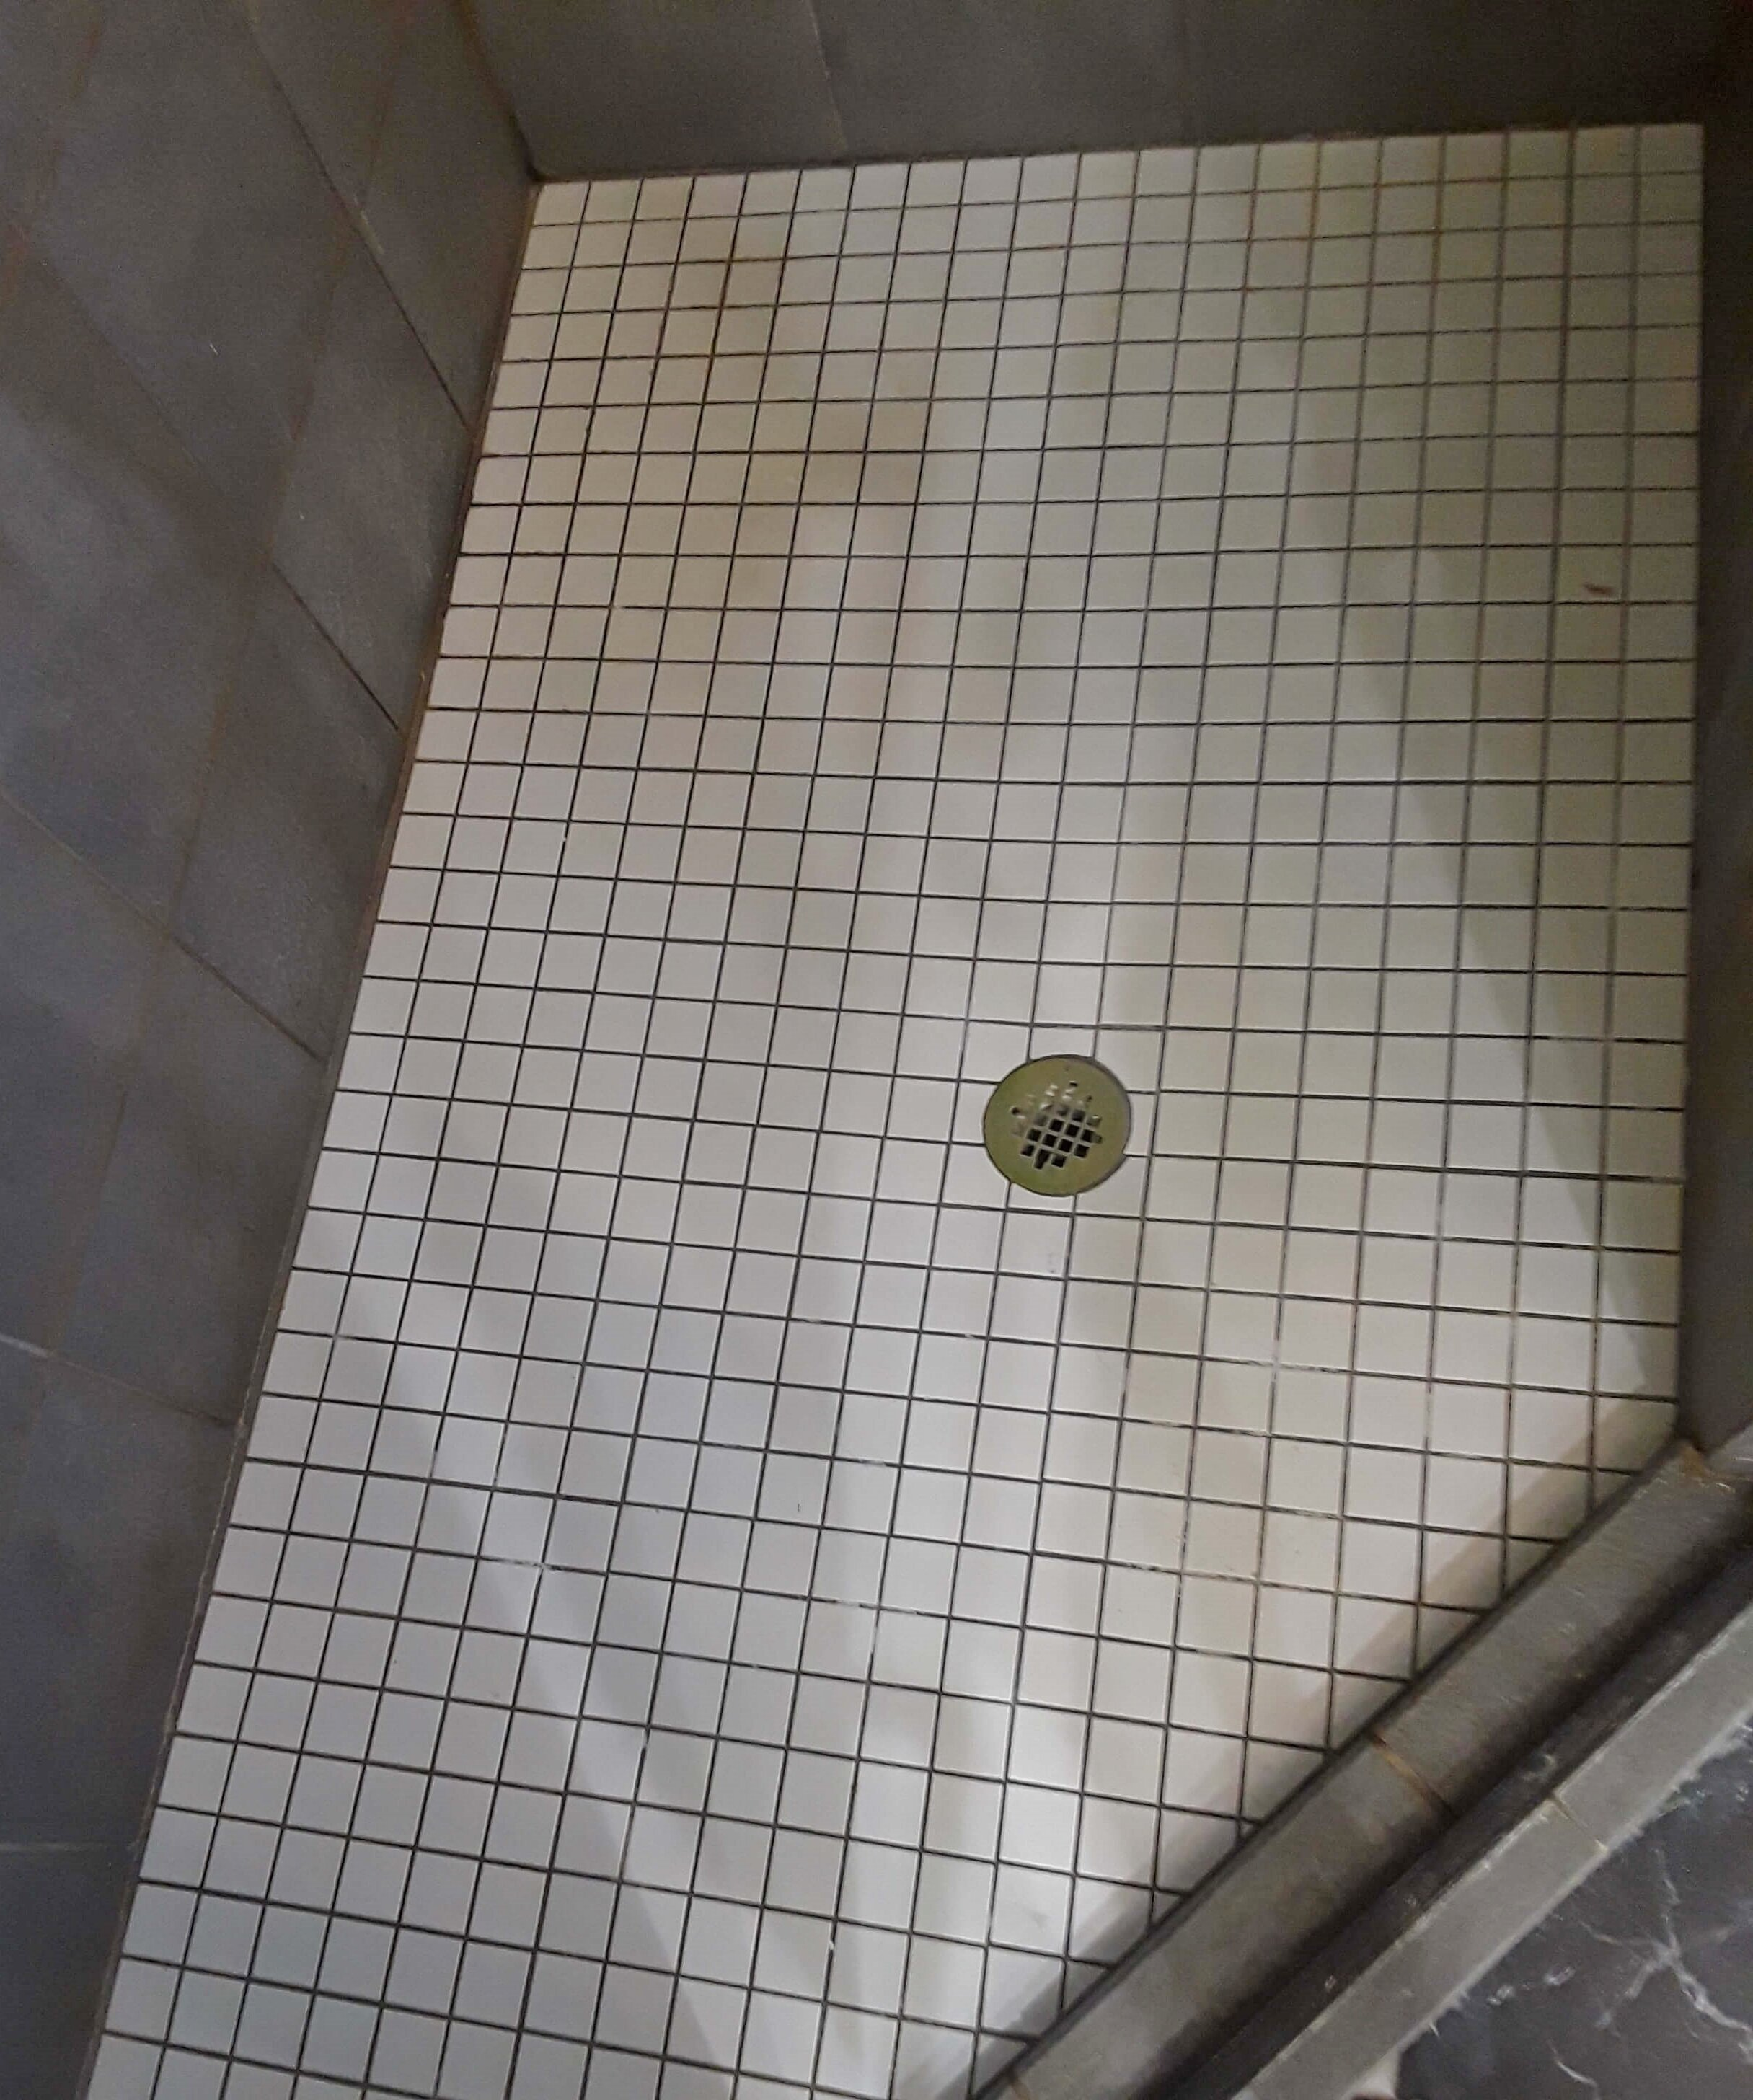 It would be a good idea to change out this shower floor with tile to match the floor of the bathroom to help make this bathroom feel less chopped up and visually flow together. #showerfloor #bathroomshower